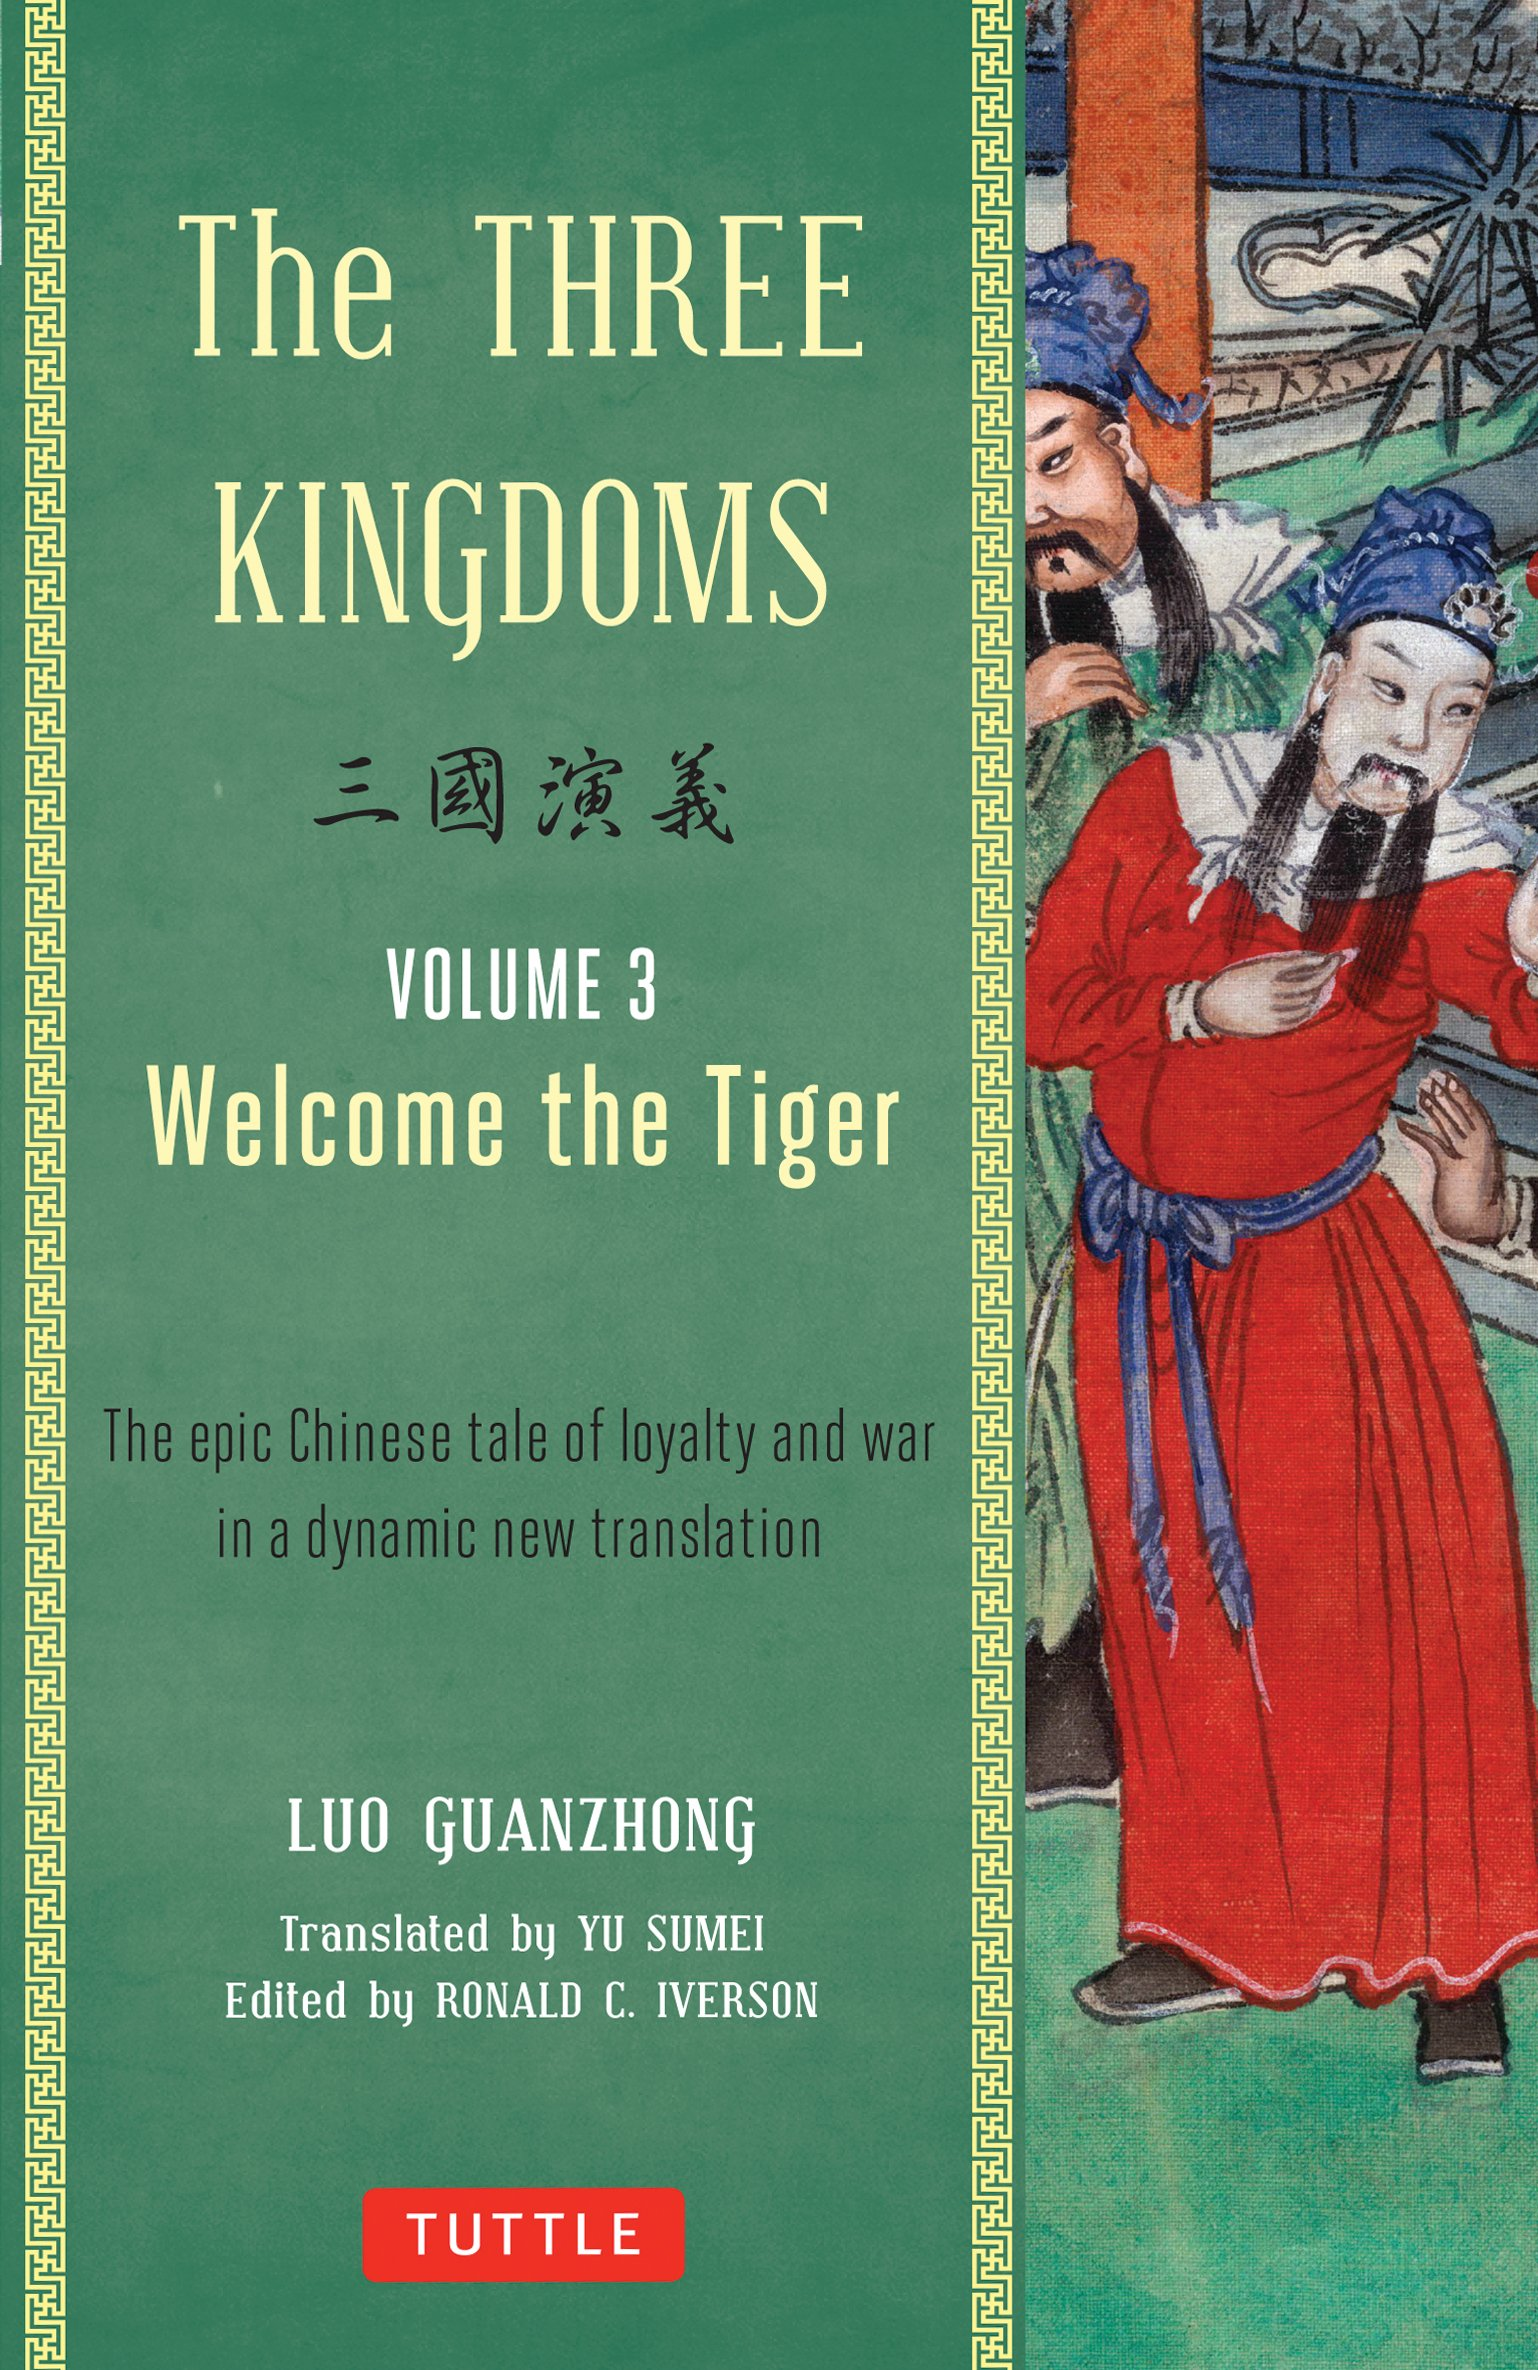 Download The Three Kingdoms, Volume 3: Welcome The Tiger: The Epic Chinese Tale of Loyalty and War in a Dynamic New Translation (with Footnotes) PDF